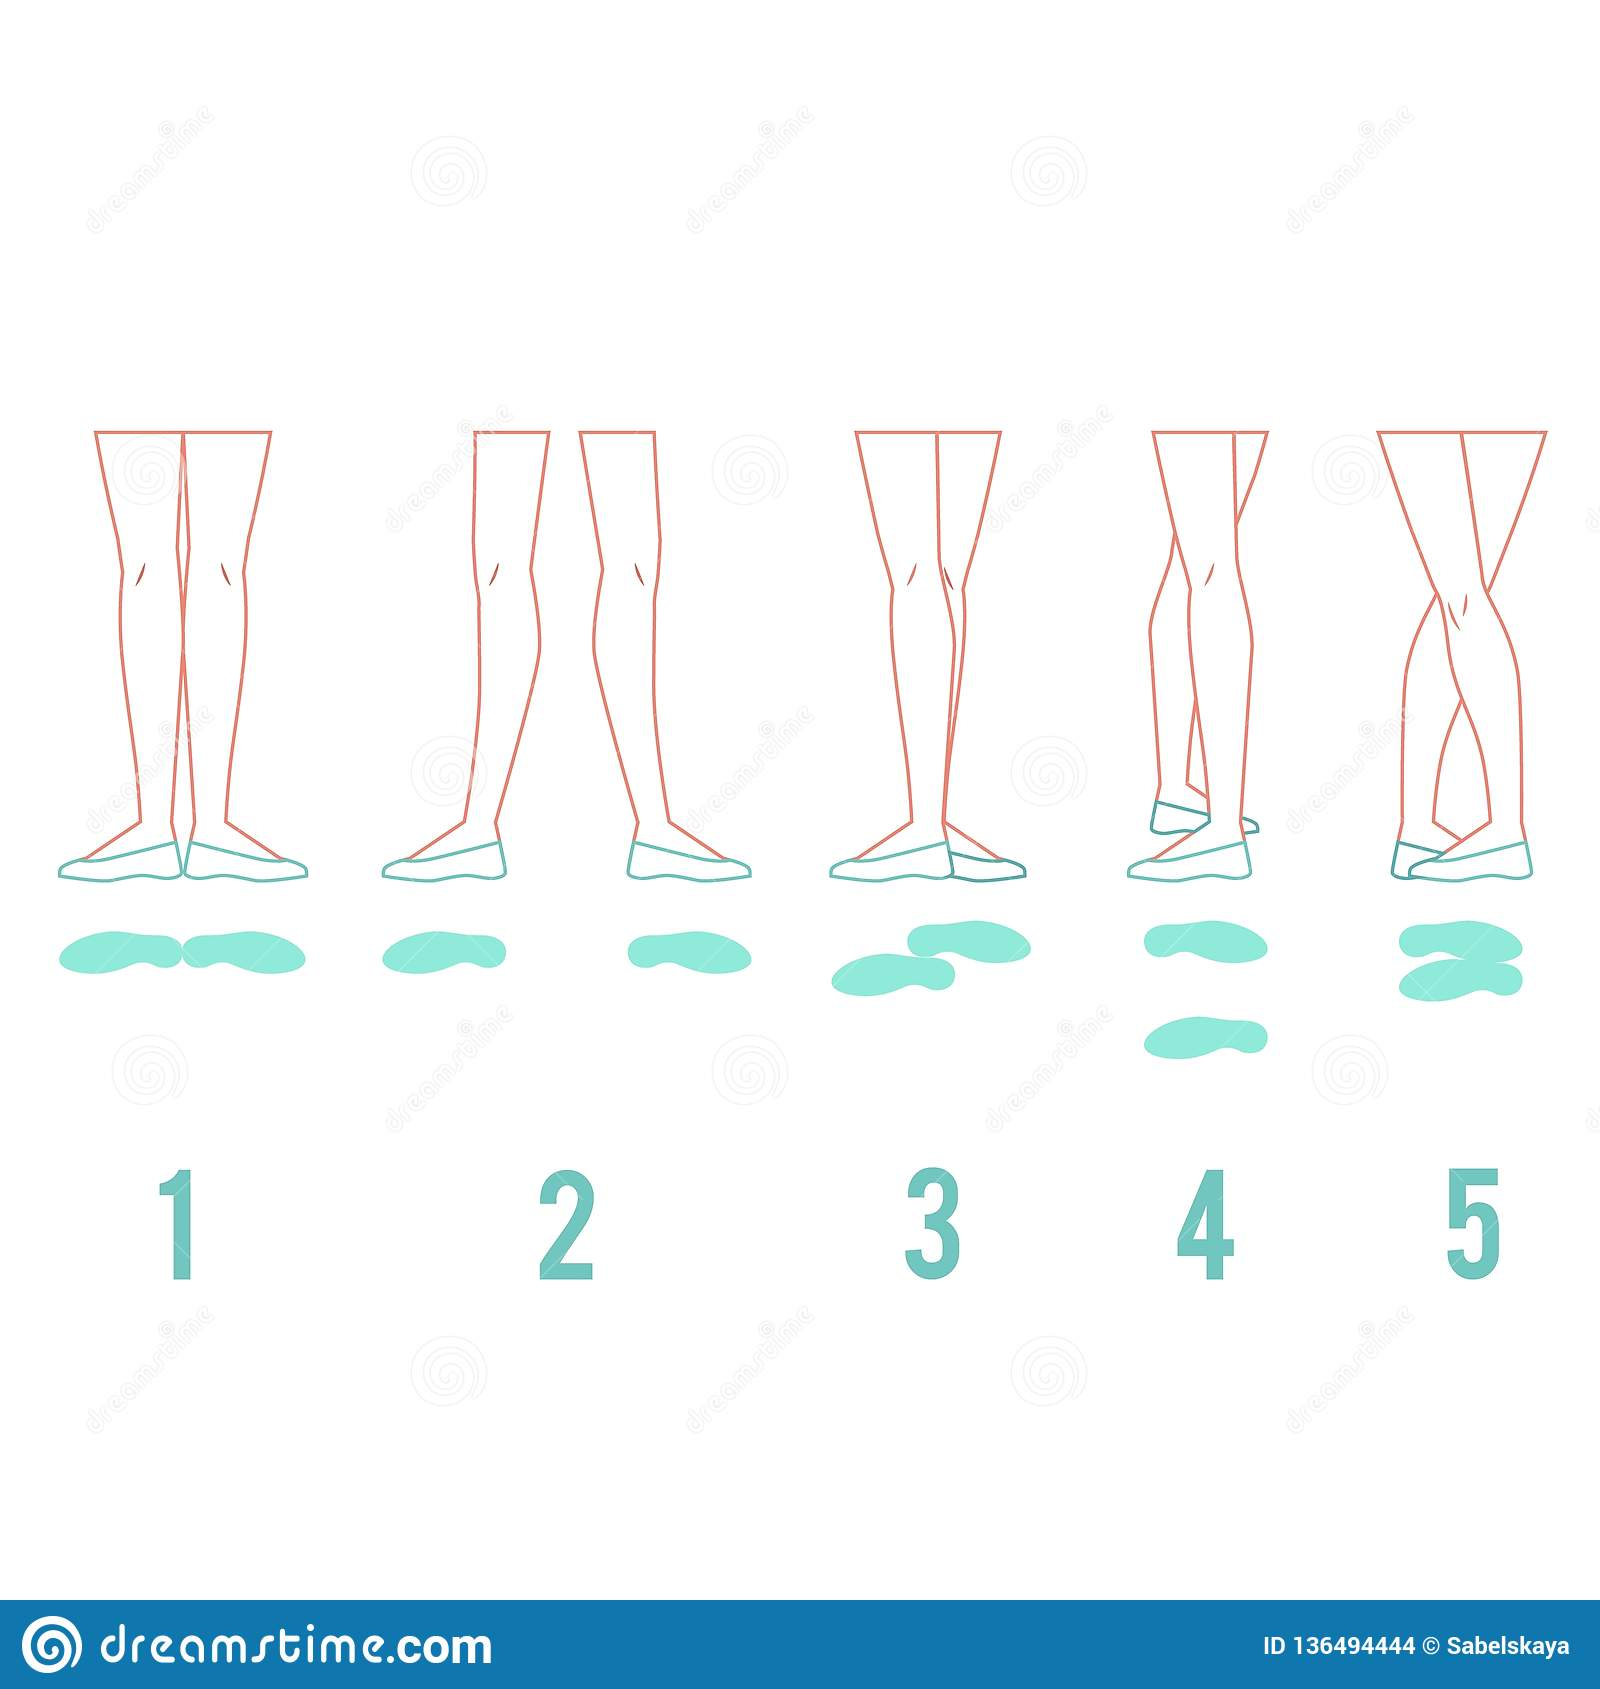 03288edec3826 Vector illustration set of ballerina feet in pointe shoes standing in five  classical ballet positions.